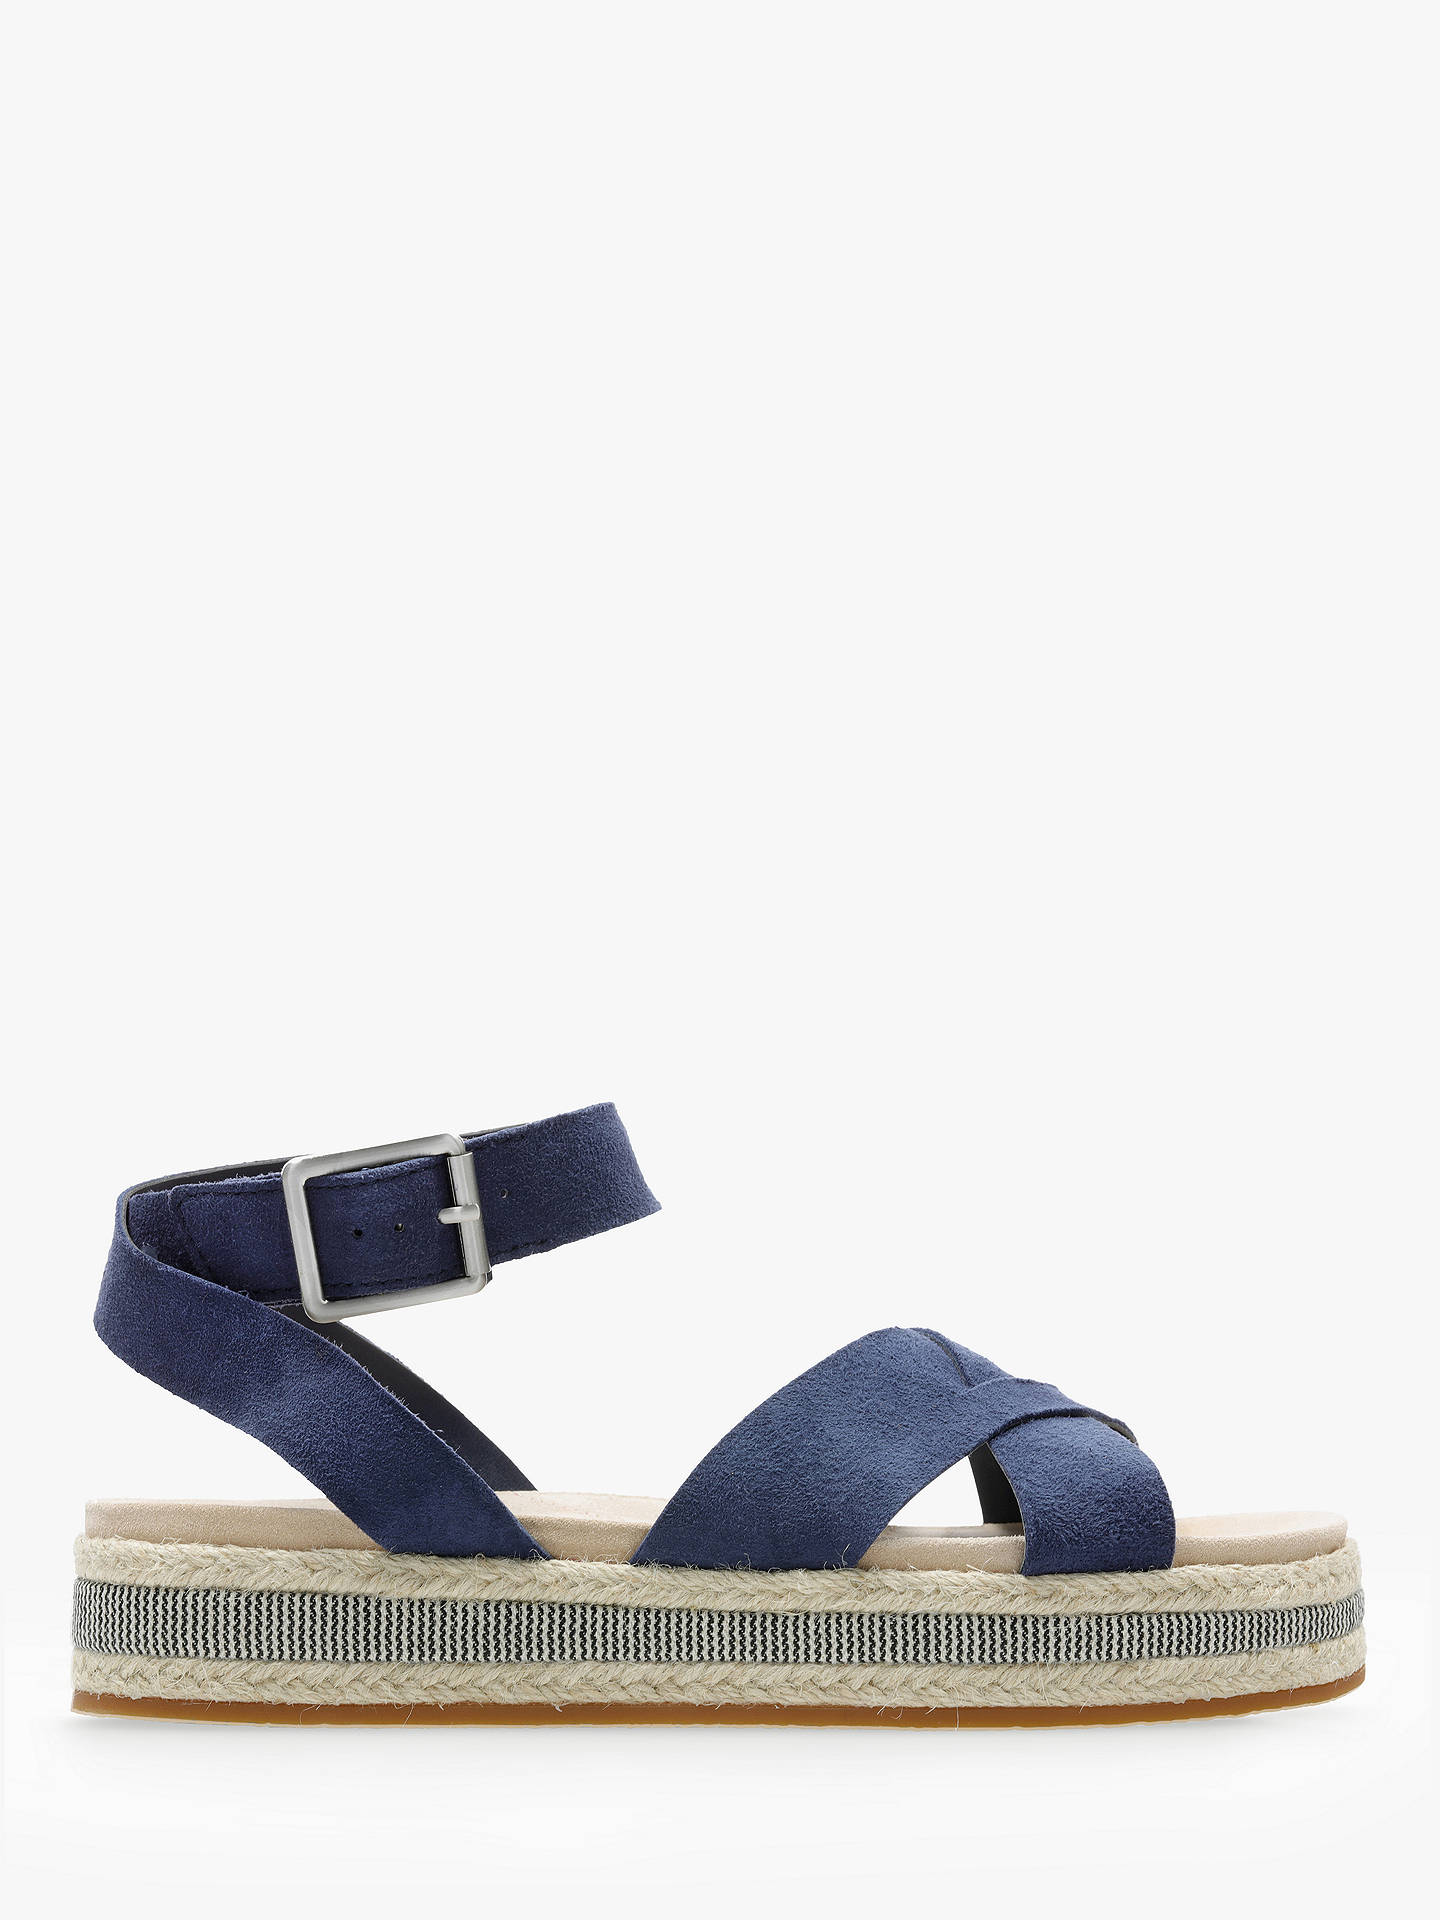 27d70b9e5bda4 Buy Clarks Botanics Poppy Sandals, Navy Suede, 3 Online at johnlewis.com ...